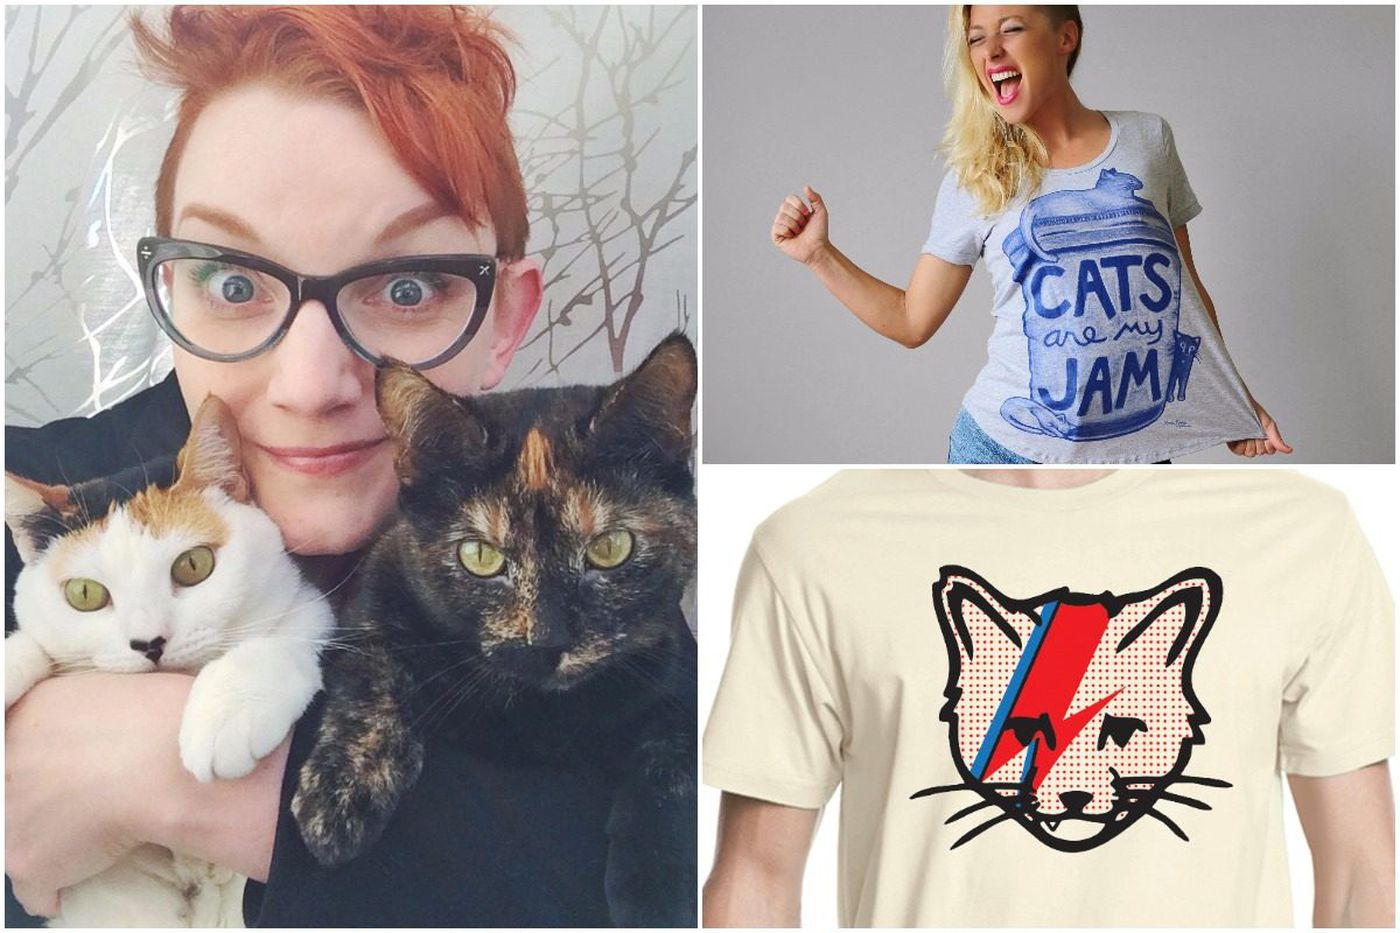 Meet Instagram-famous cats and buy cat-themed gear at first Kittydelphia pop-up shop